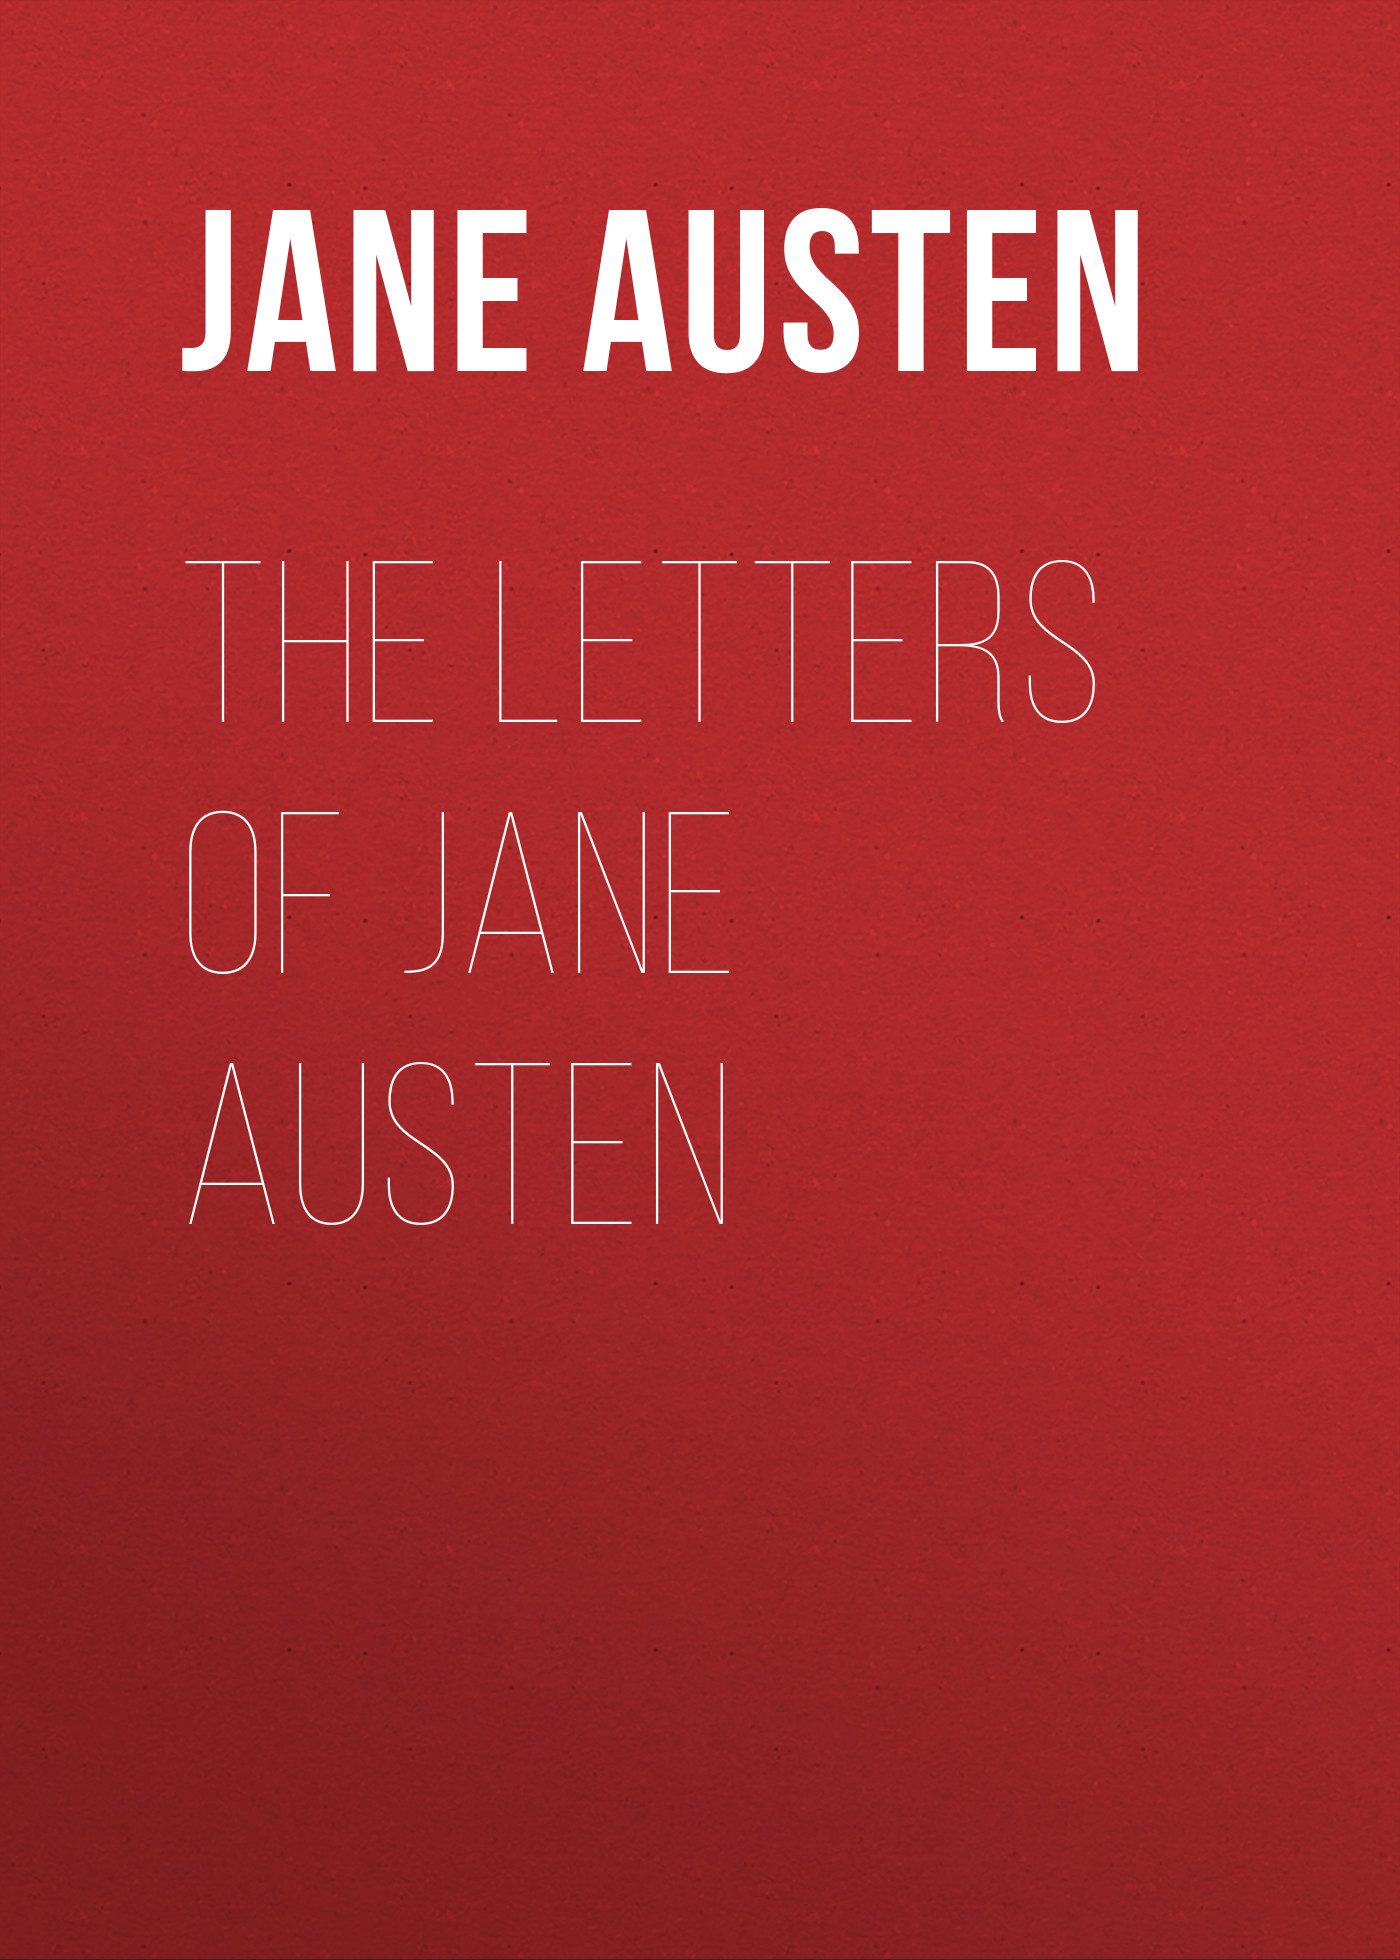 Джейн Остин The Letters of Jane Austen джейн остин the letters of jane austen